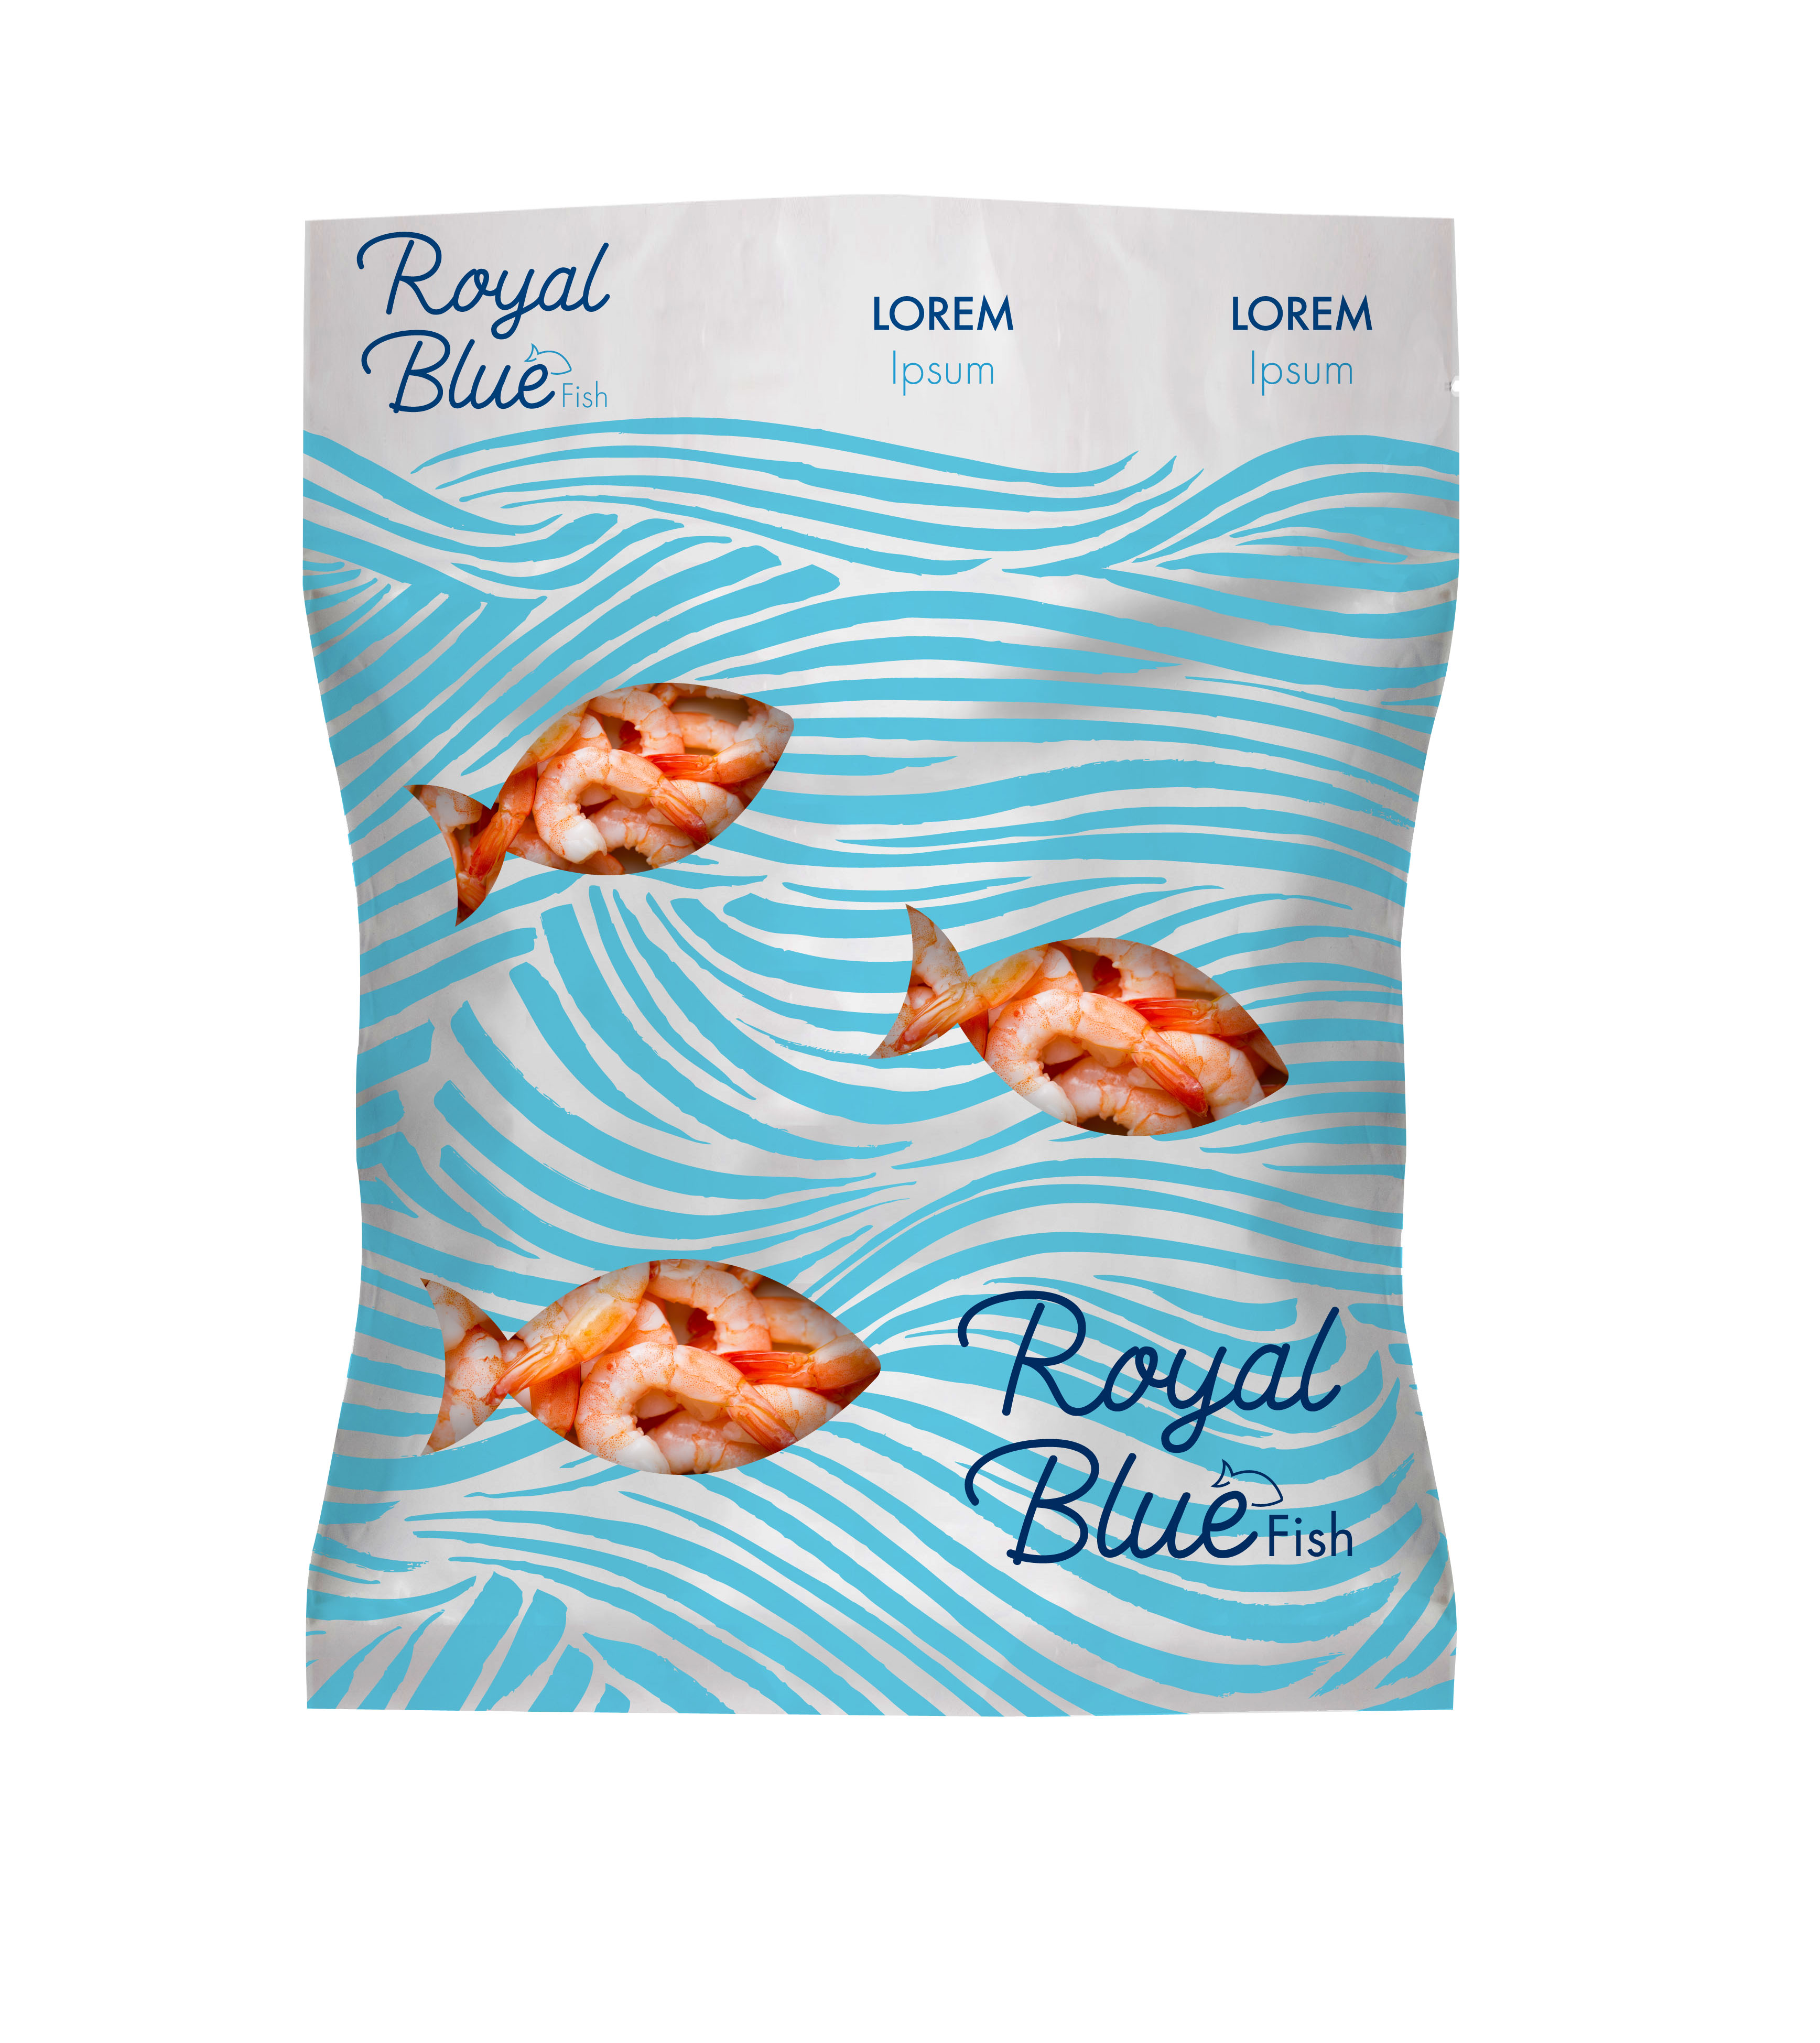 ROYA BLUE - Fish Package